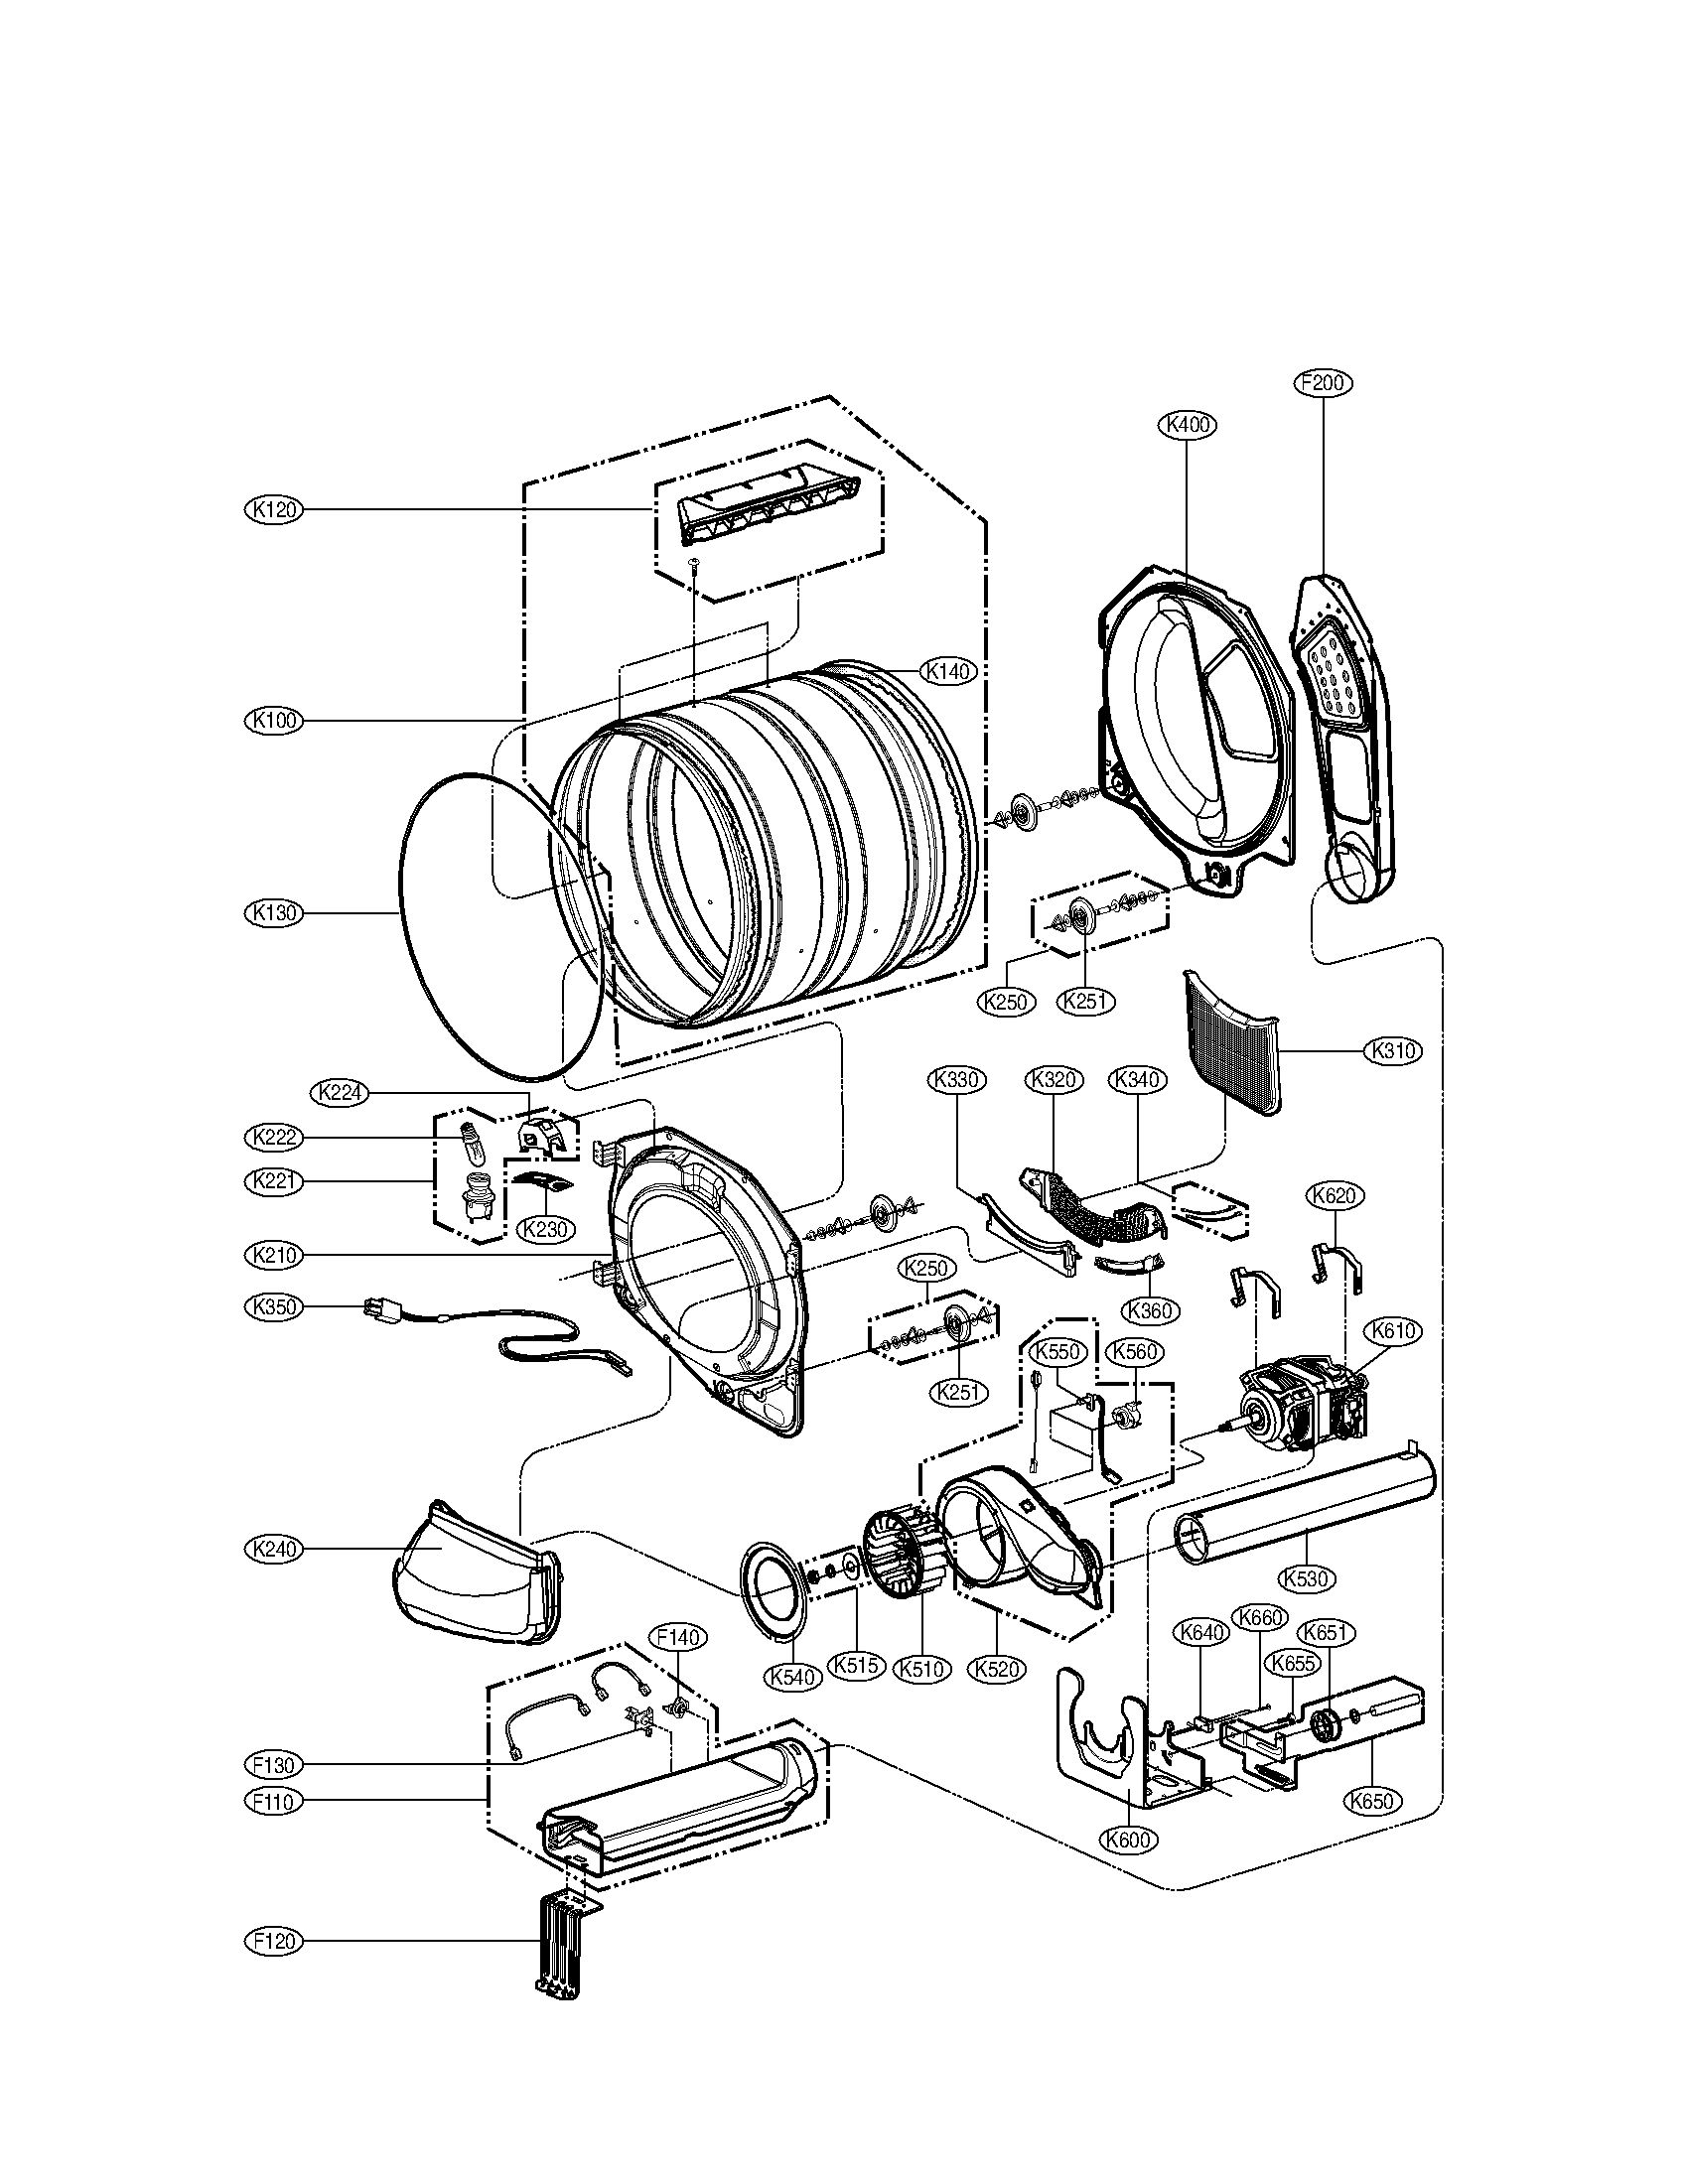 Drum and motor parts assembly diagram parts list for model dle2140w lg parts dryer parts searspartsdirect